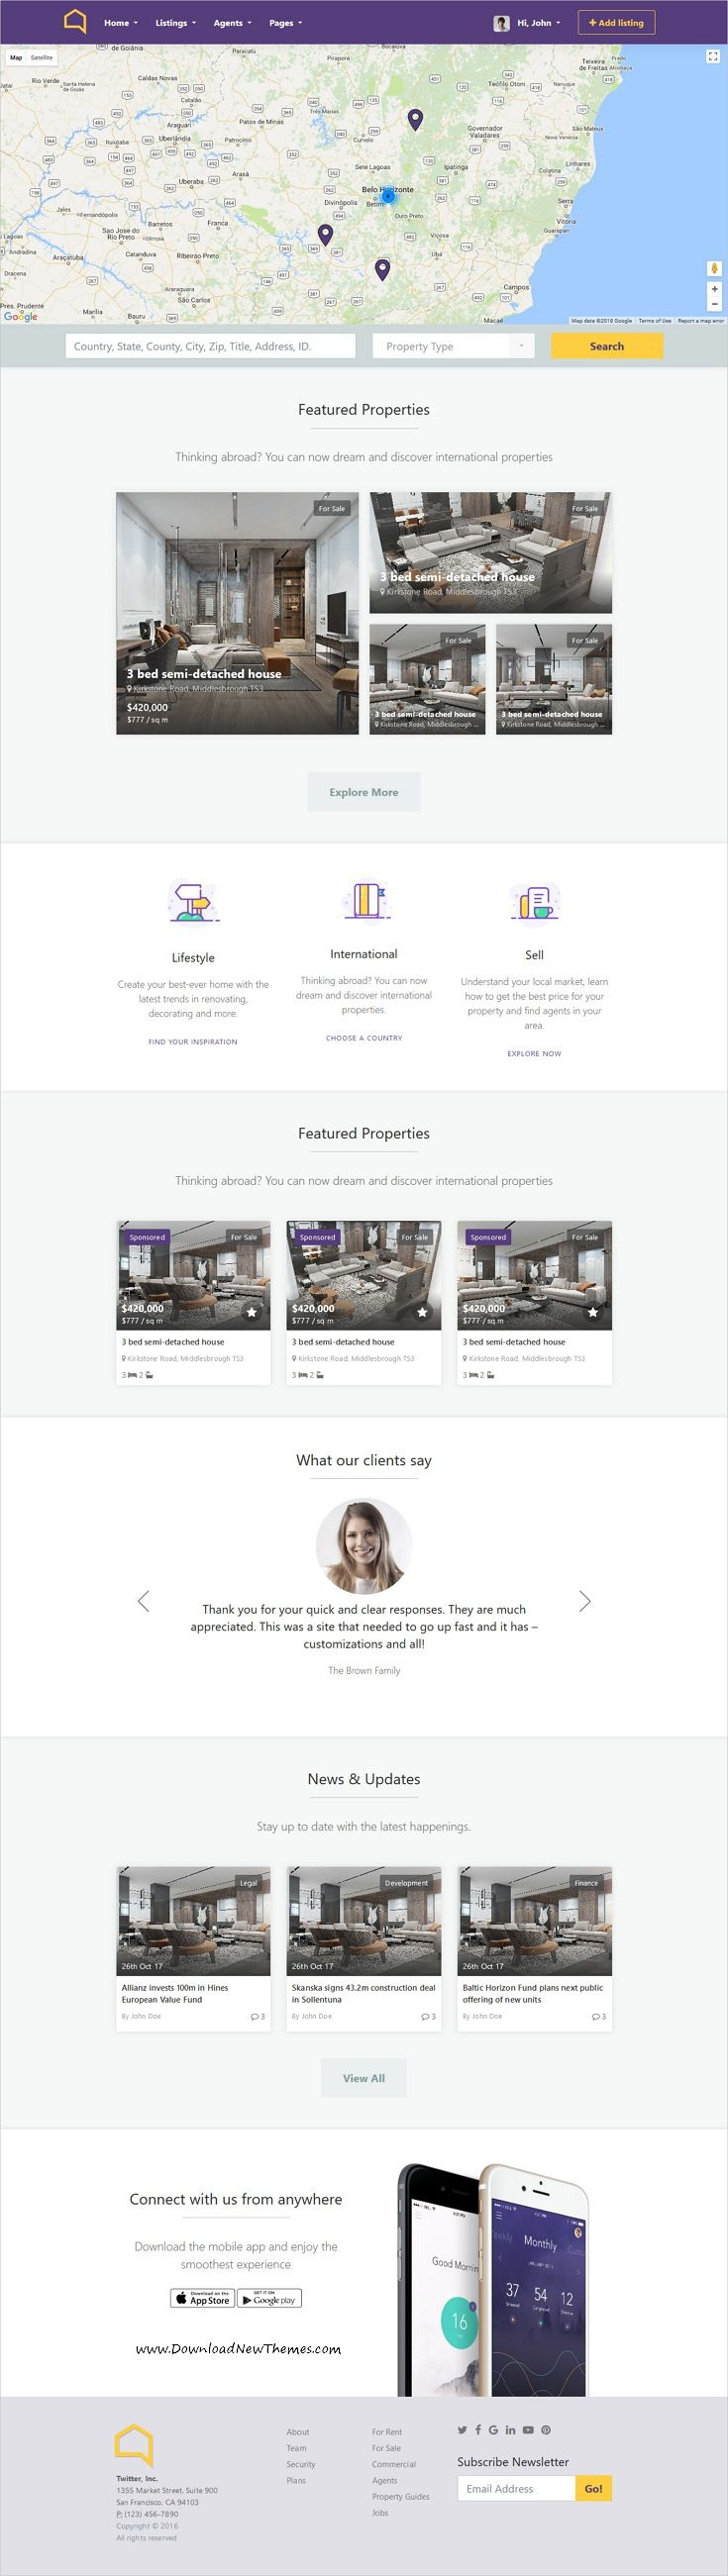 Listo real estate bootstrap 40 html template list website listo is clean and modern design 7in1 responsive html bootstrap template for professional realestate flashek Image collections